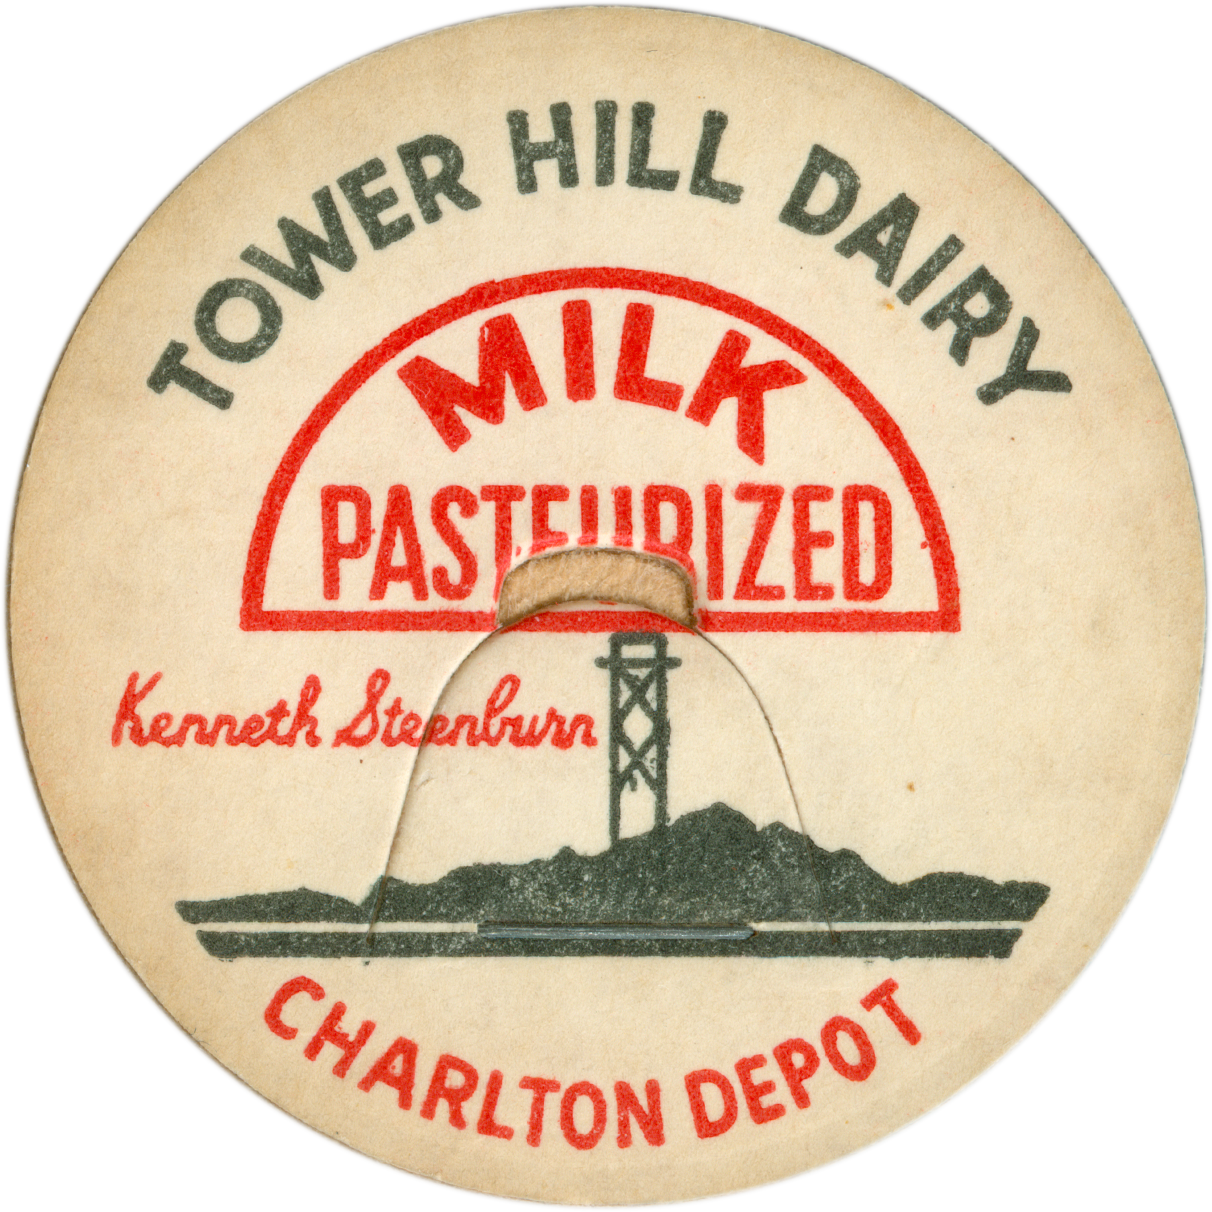 VernacularCircle__0000s_0007_Tower-Hill-Dairy---Milk-Pastuerized-.png